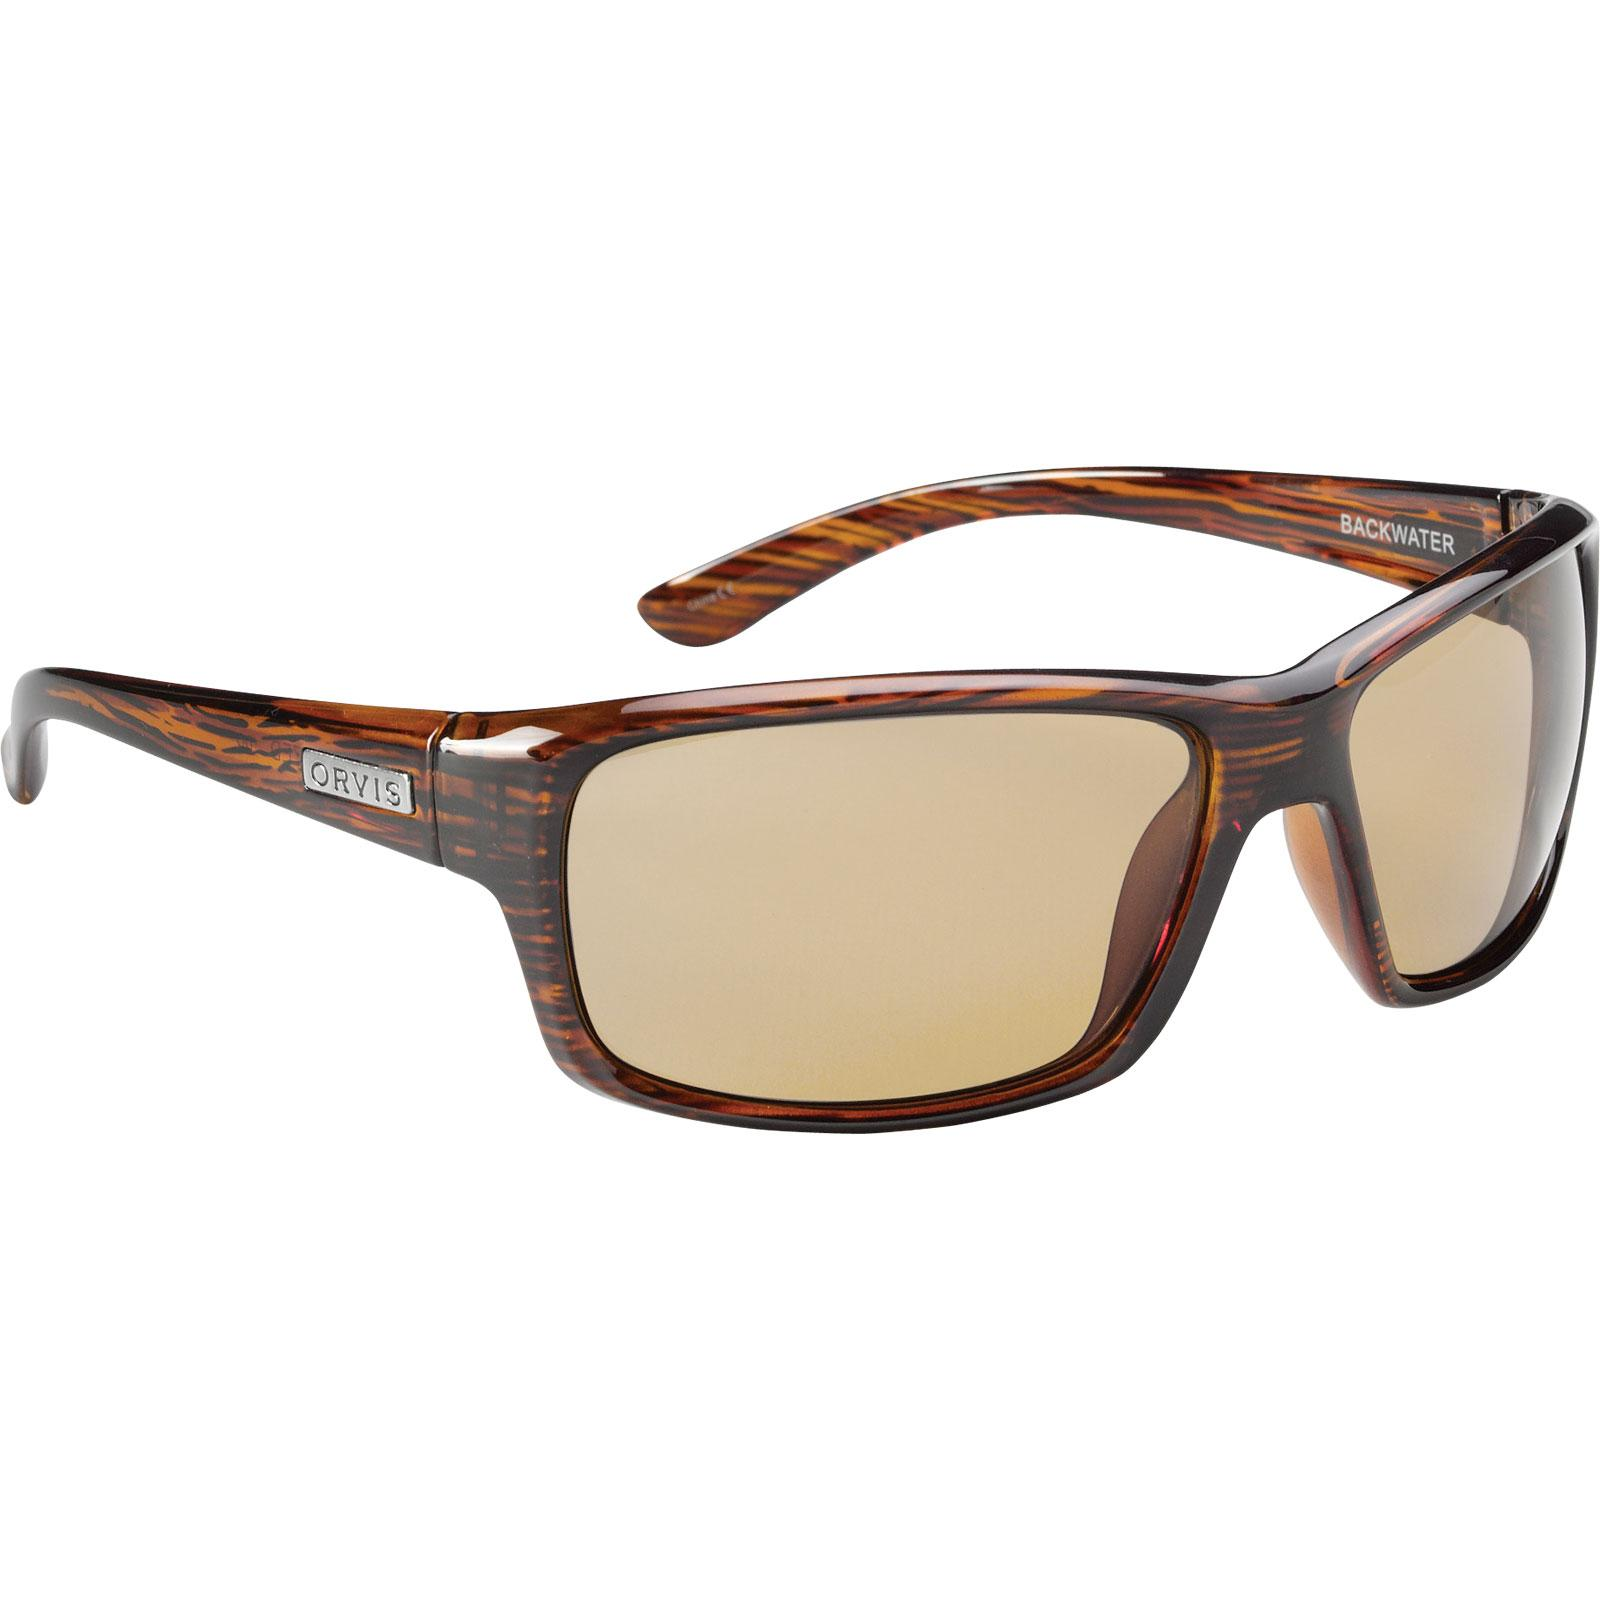 Orvis Men's Superlight Backwater Polarized Sunglasses